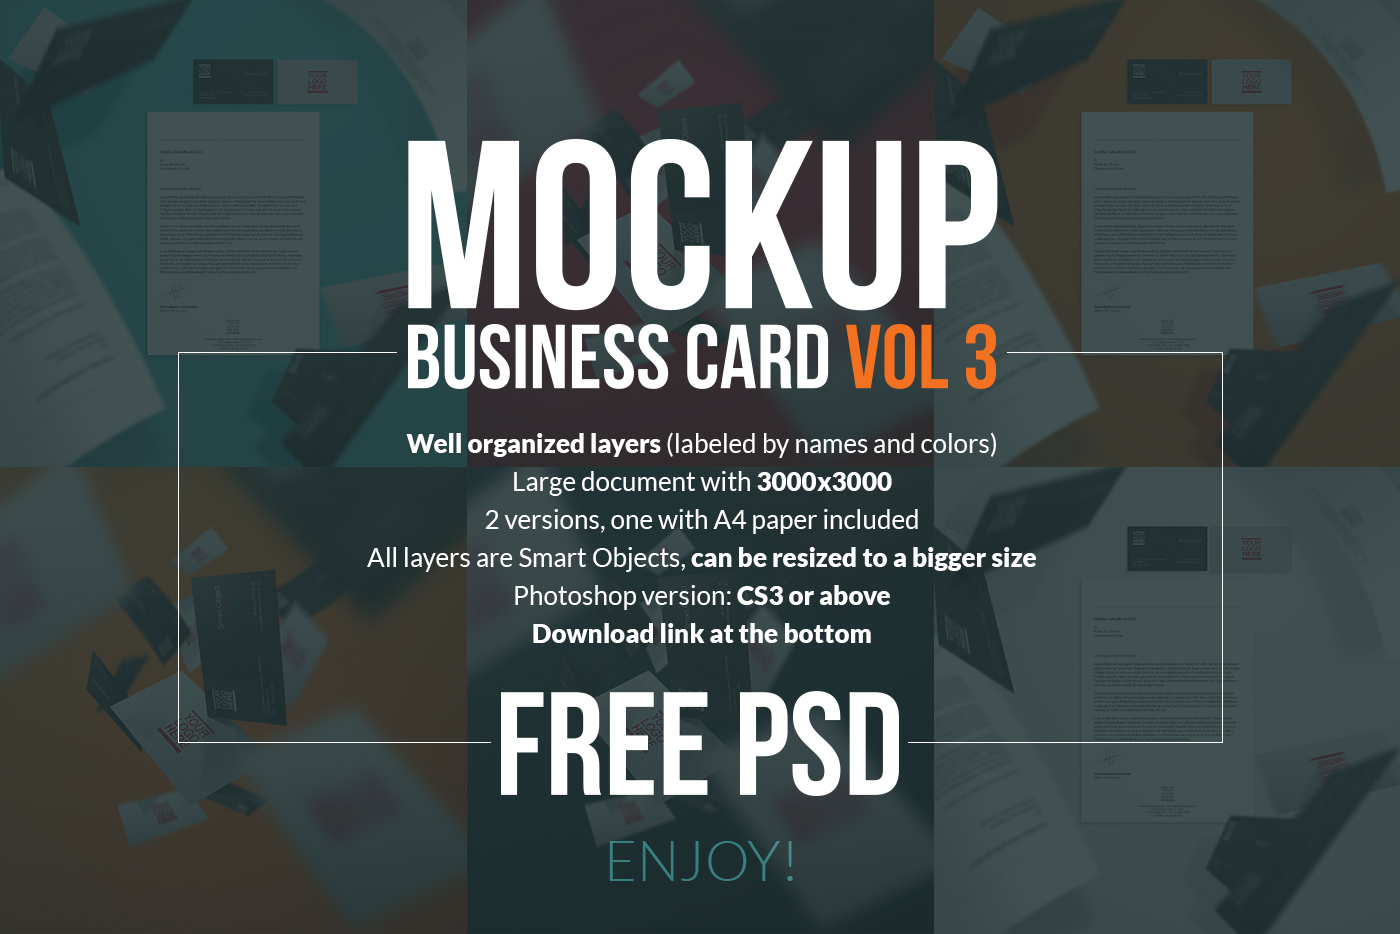 Free psd business card mockup volume 3 on behance help reheart Image collections